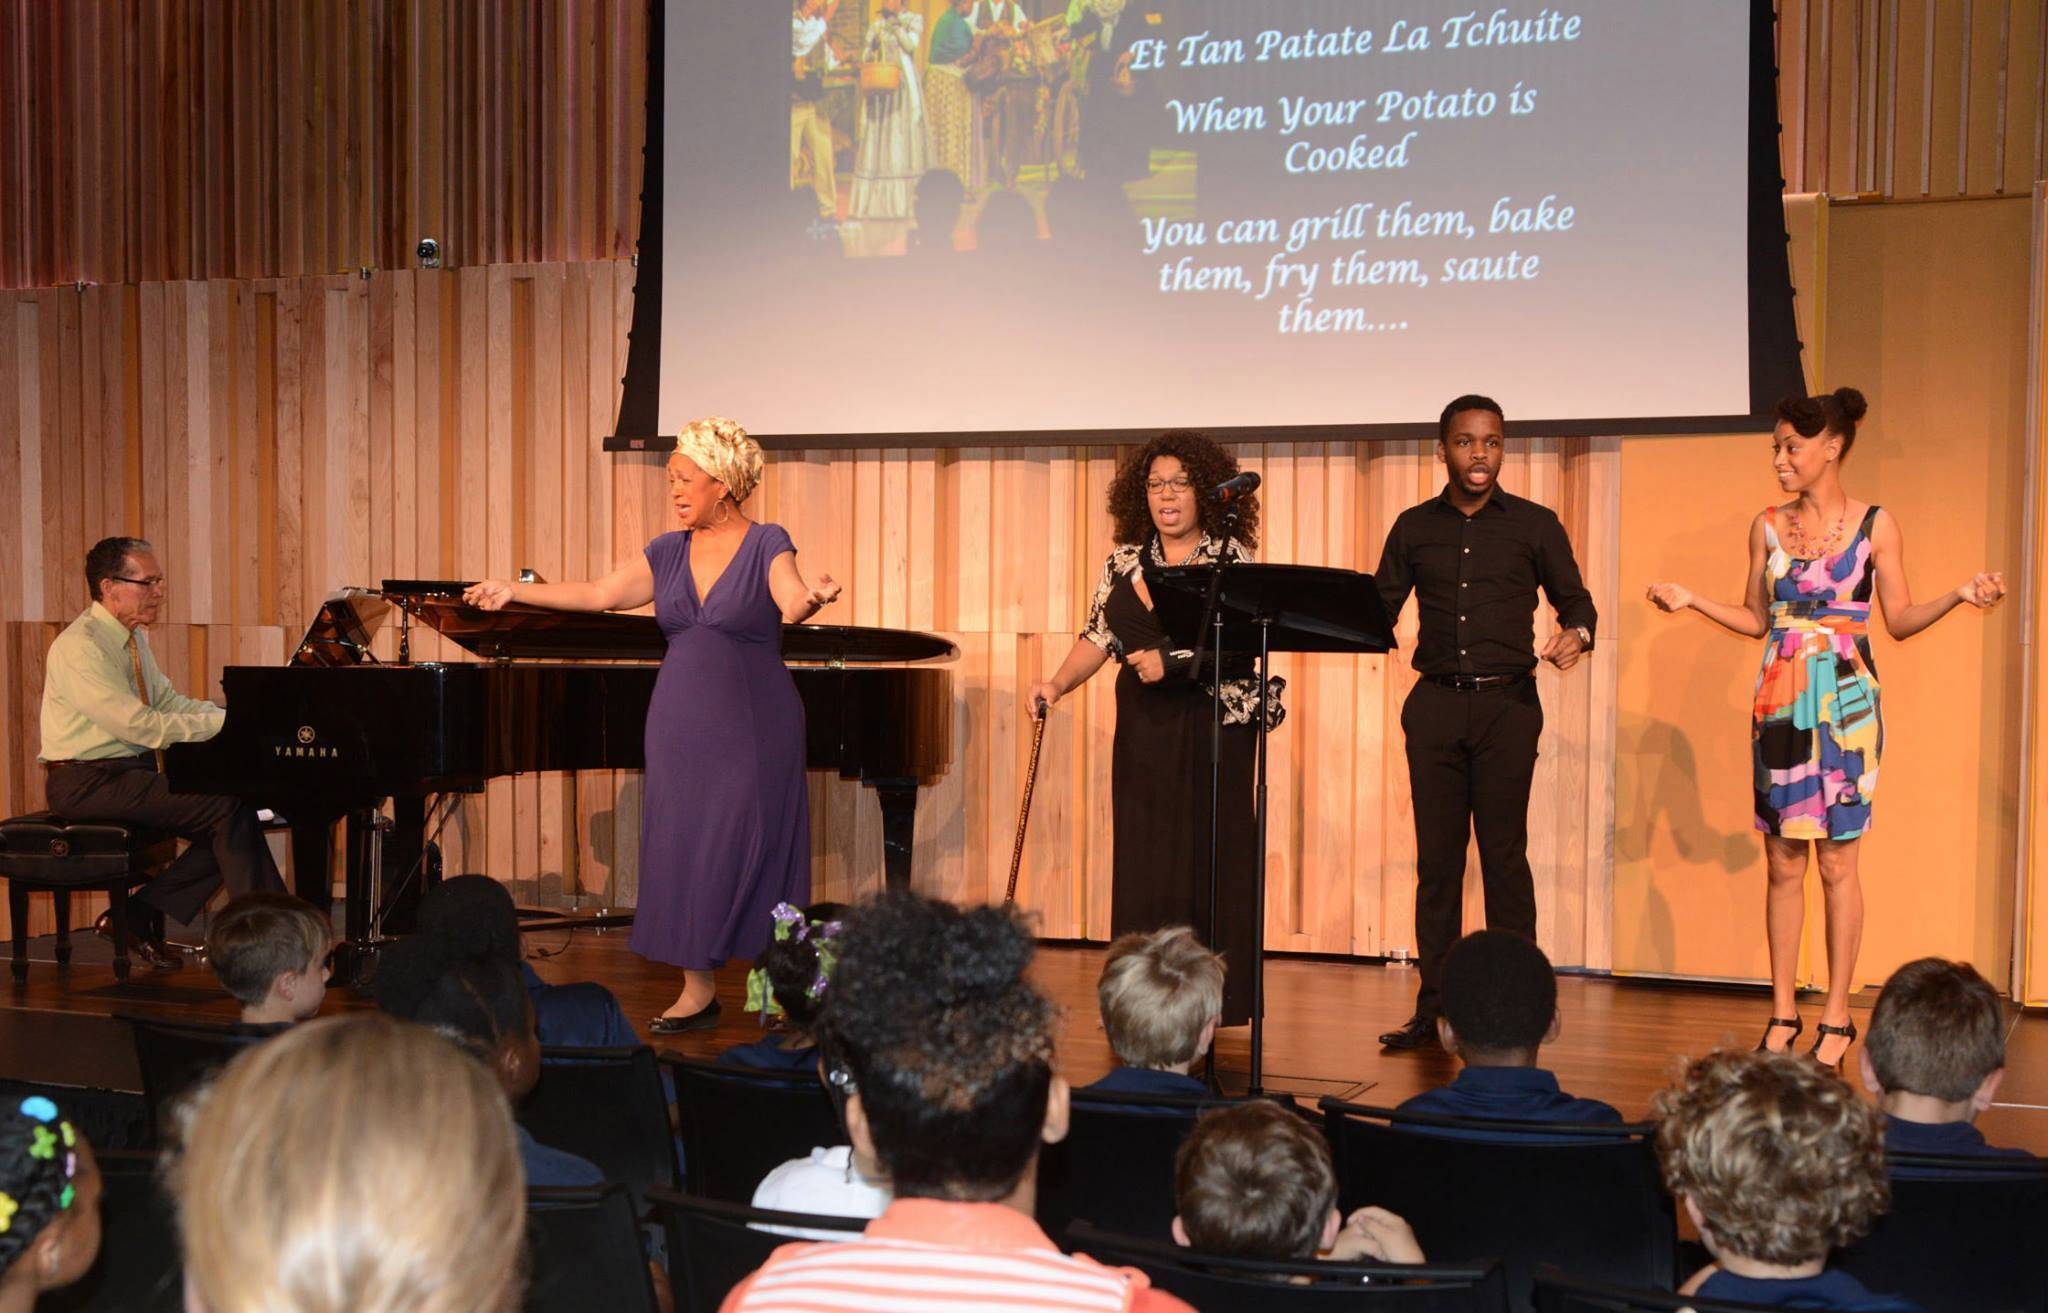 Education Outreach wirh New Orleans Opera